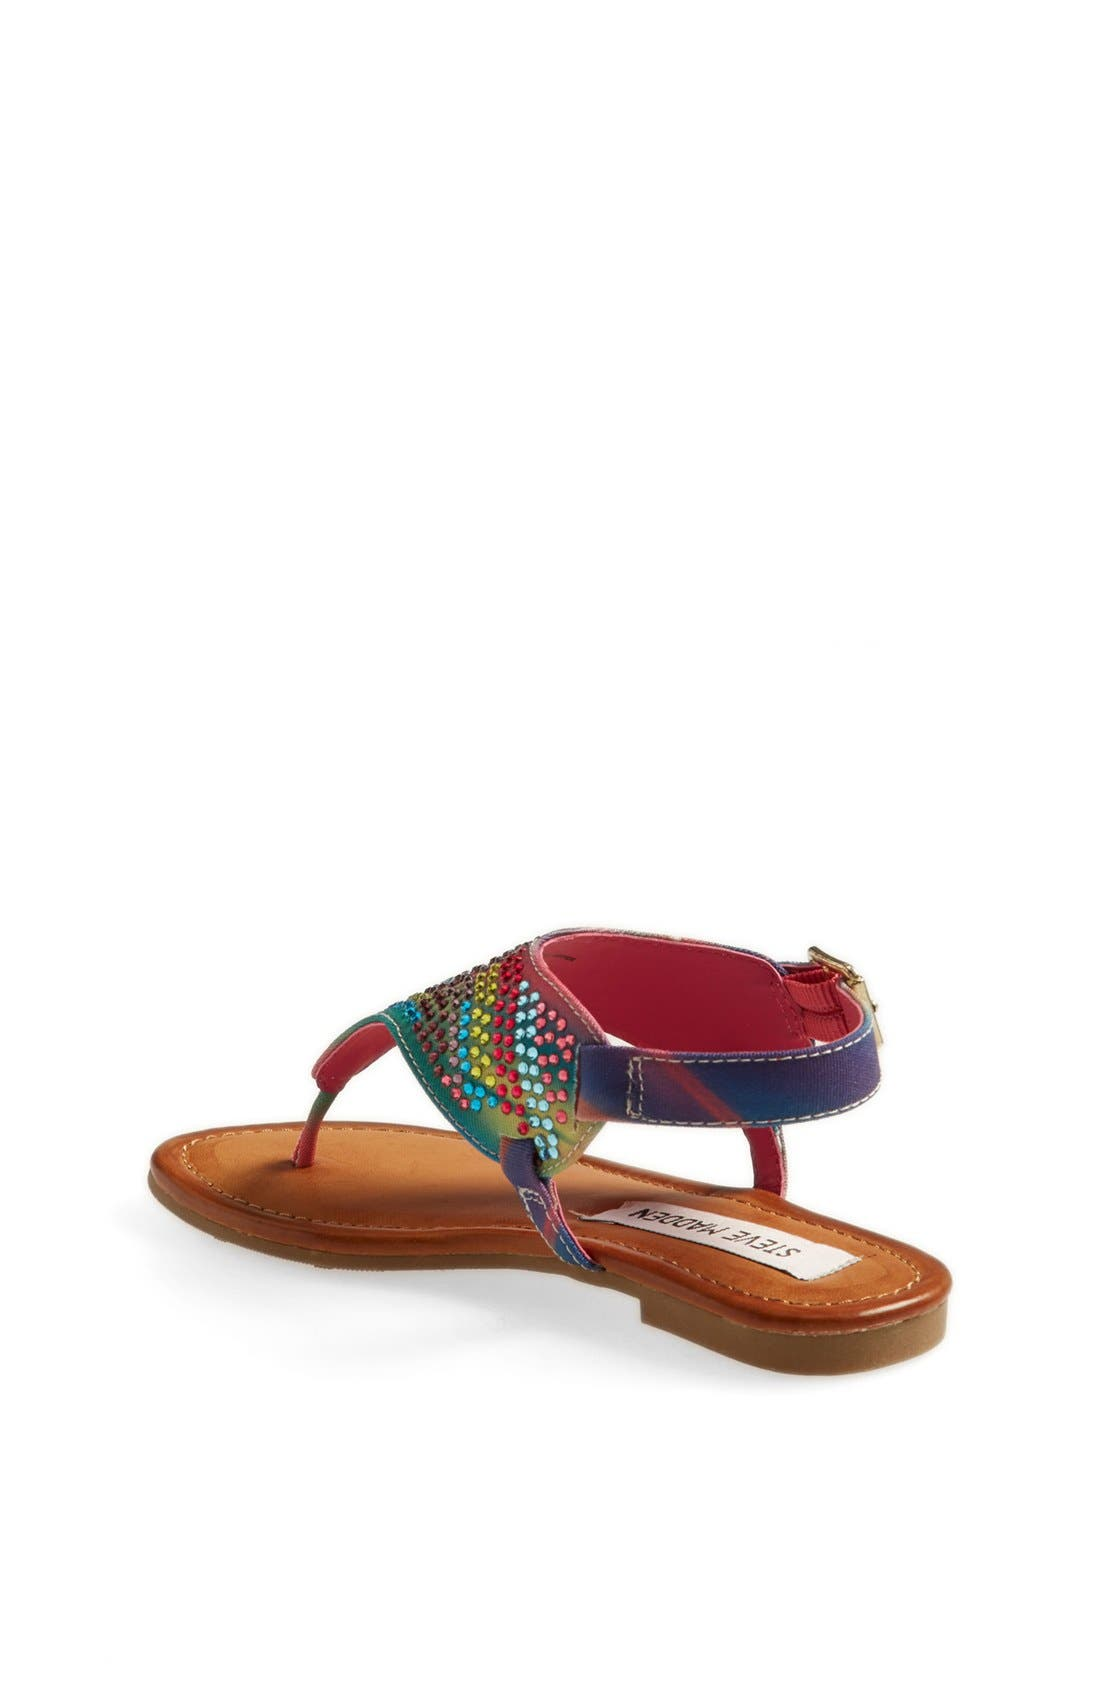 Alternate Image 2  - Steve Madden 'Bizee' Sandal (Toddler, Little Kid & Big Kid)